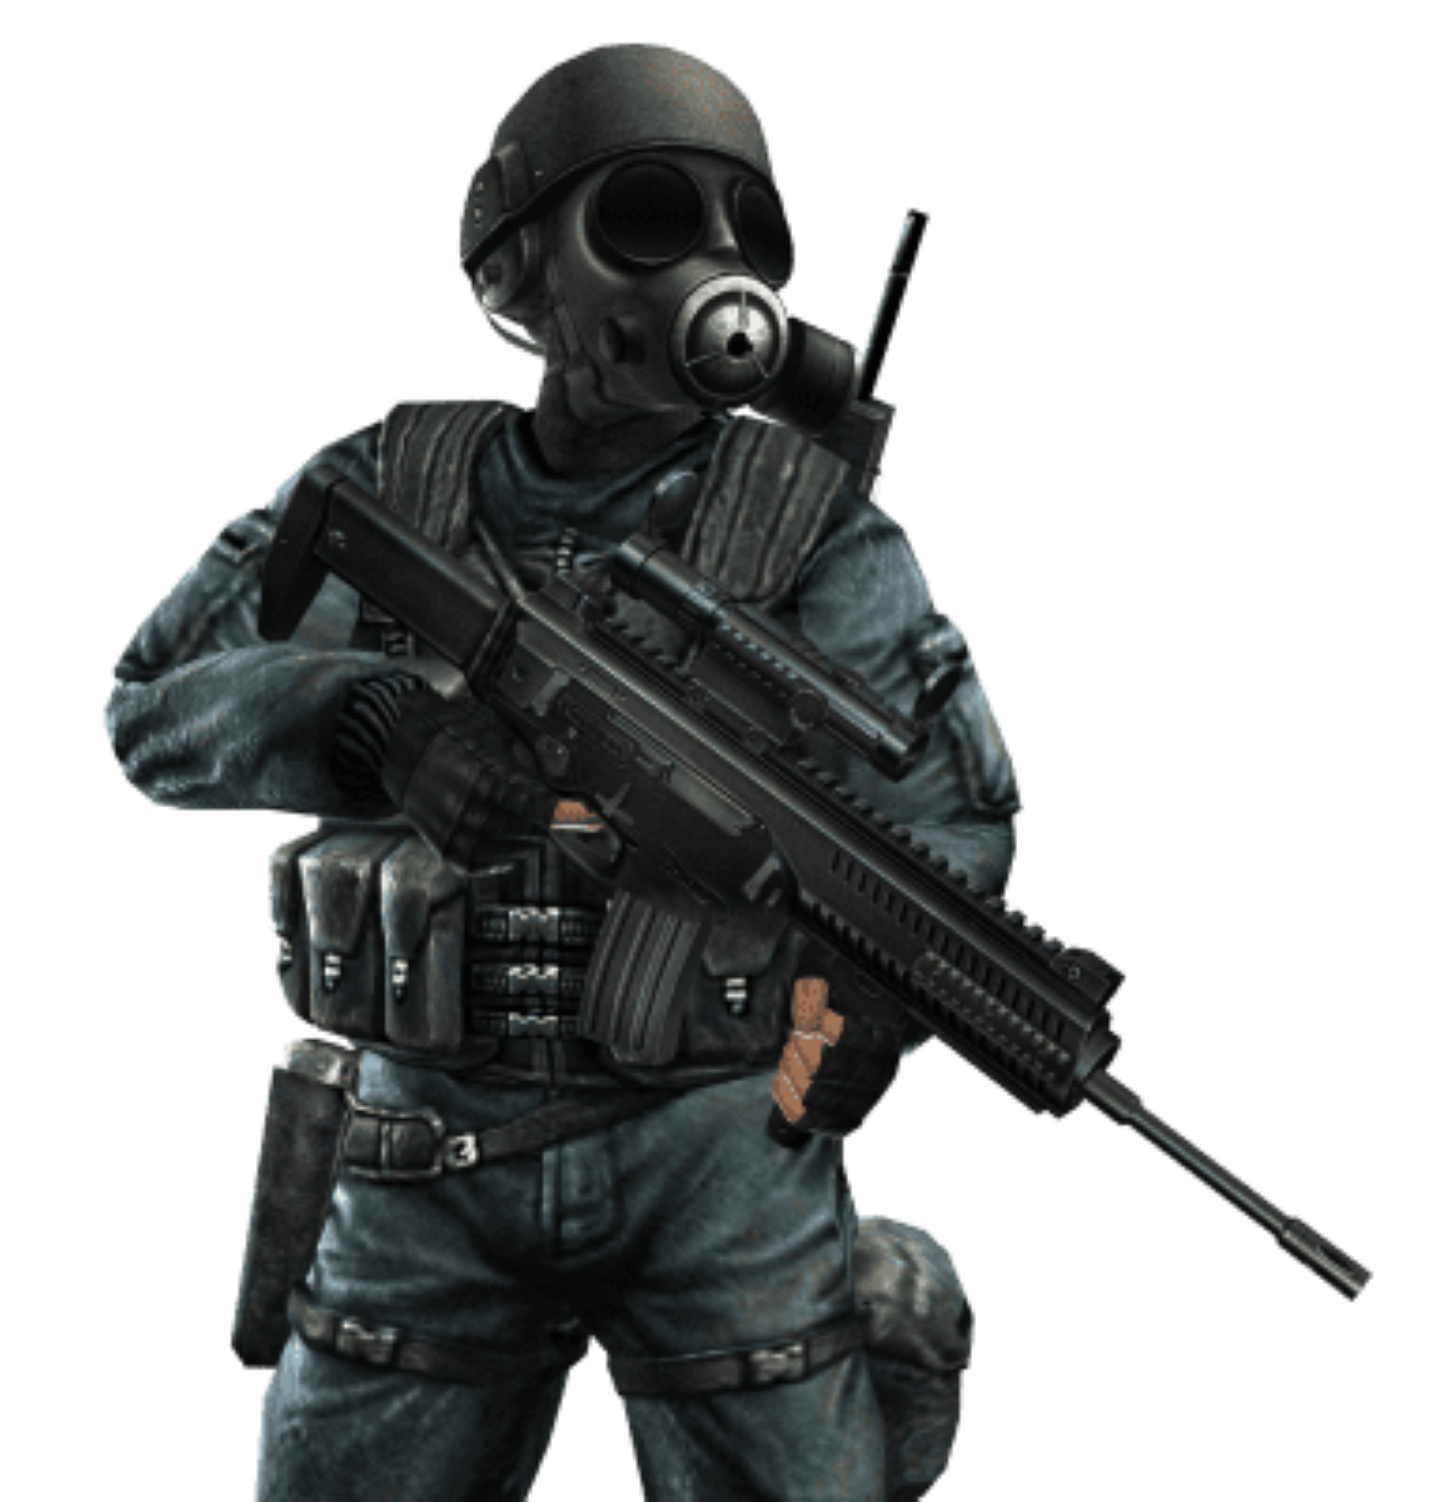 Play Counter-Strike & Earn Real Money | CS GO Download @BUFF